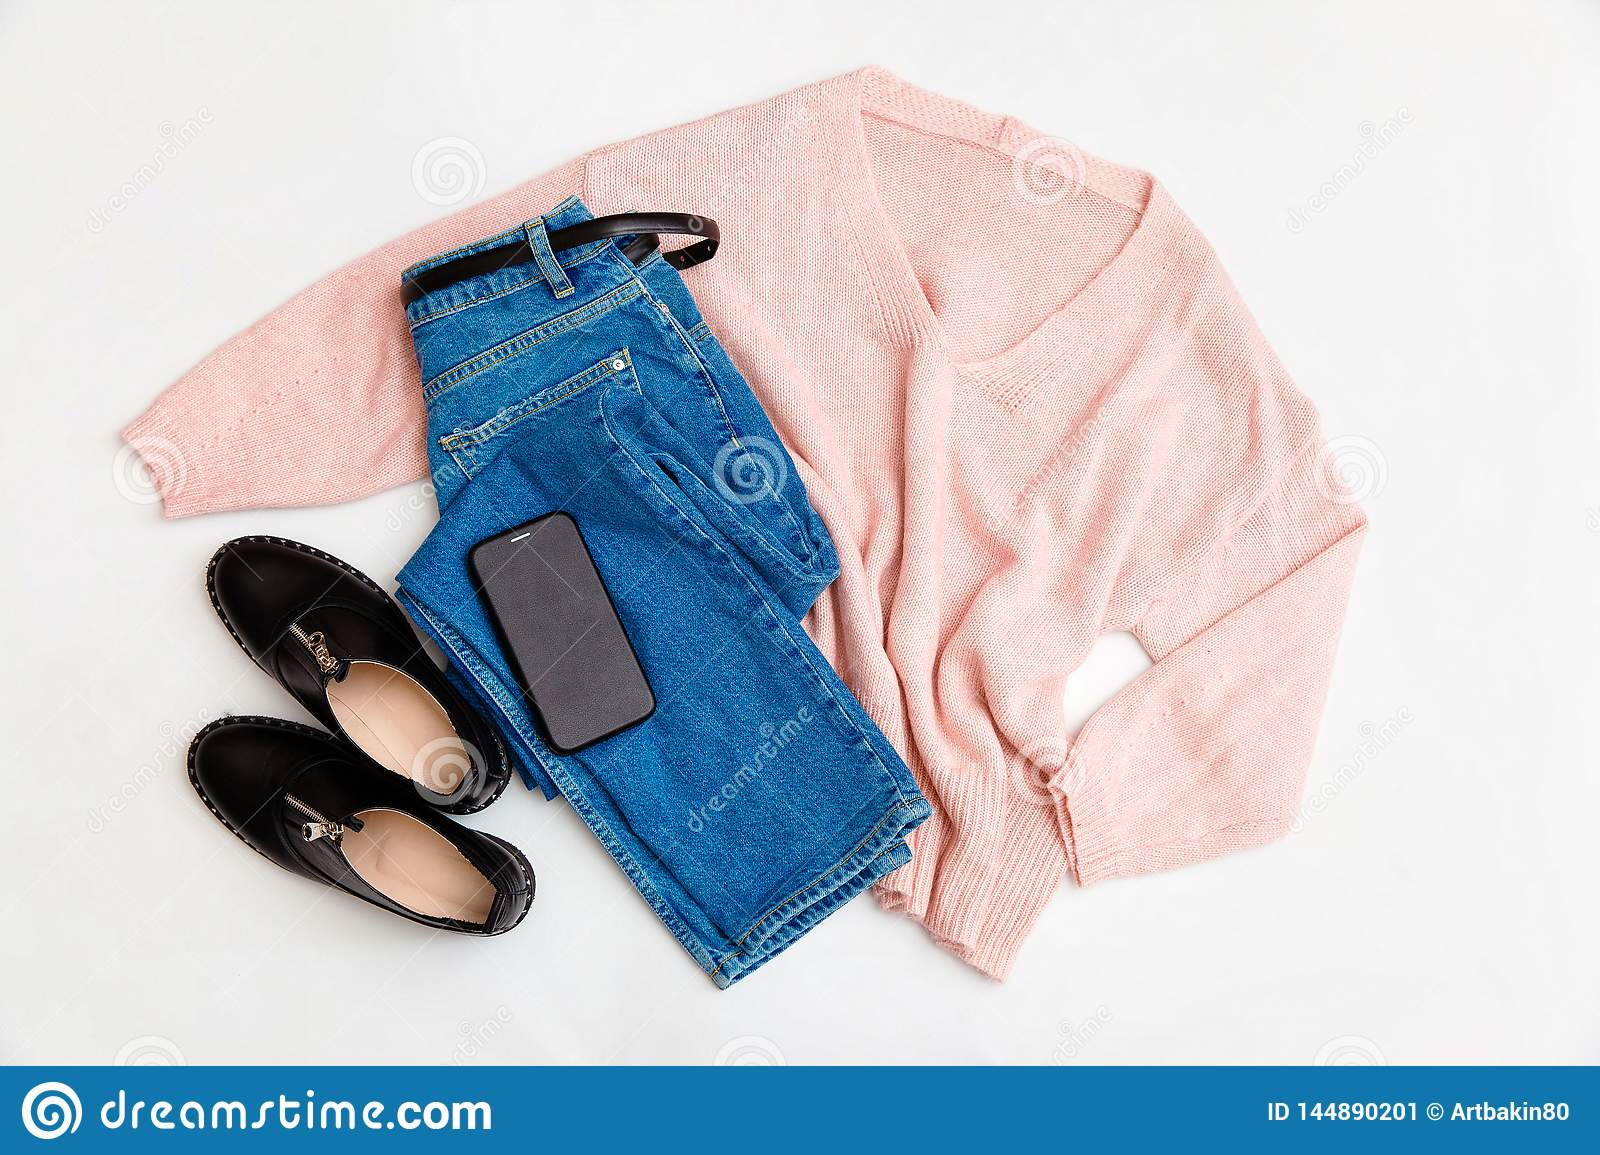 acf235a99fd6 Women`s fashion clothing and accessories. Female youth collage on white  background top view. A flat lay-out in feminine style looks with a warm  sweater, ...